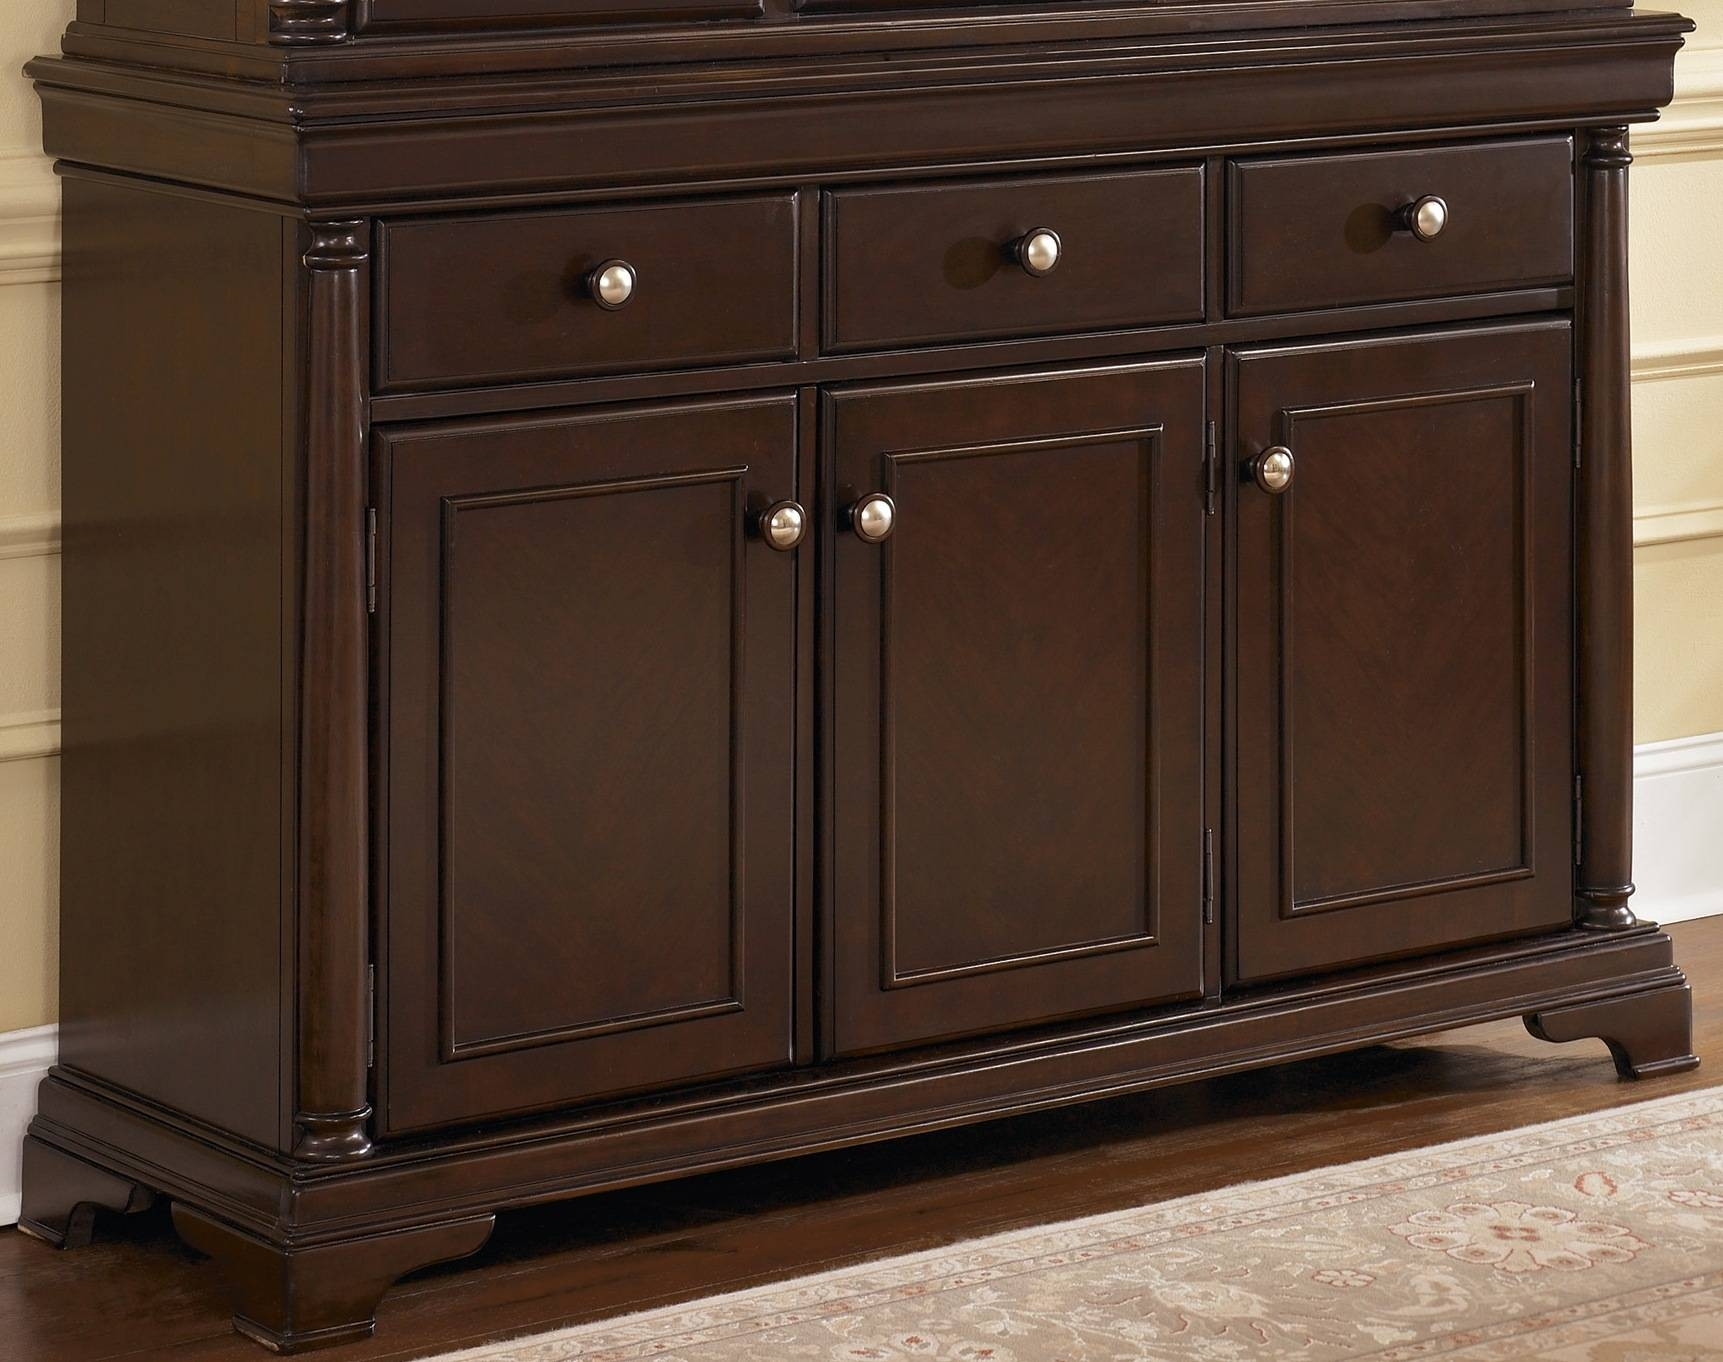 Dining Room Credenza Ideas Including Buffet Cabinet Pictures in Dining Buffets and Sideboards (Image 9 of 15)